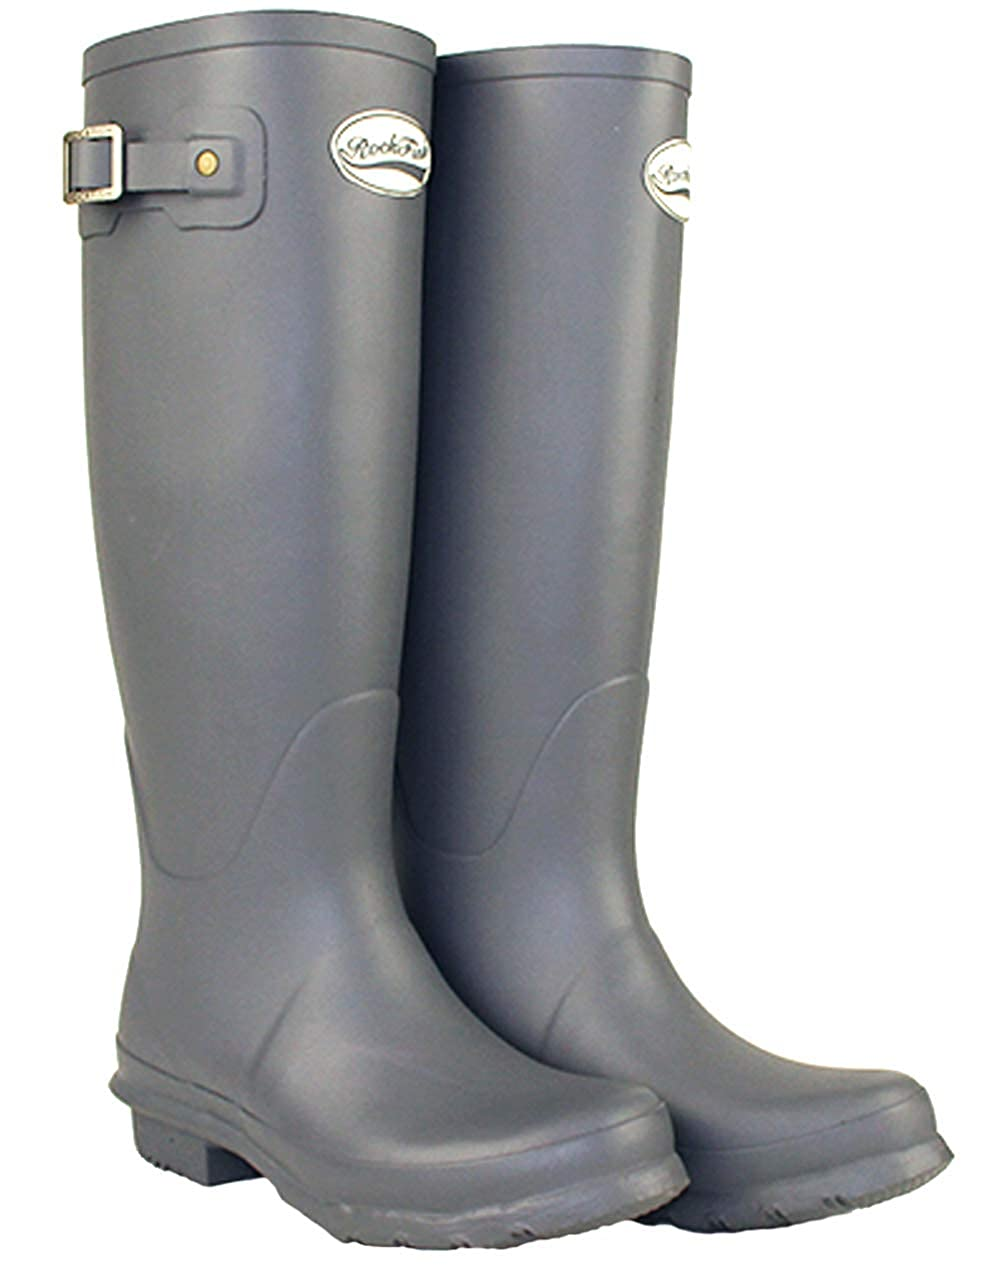 Earl gris Rockfish Award Winning bottes, Knee-High, Knee-High, Ladies Wellington bottes, Natural Rubber, calenderouge, Cushioned Insole, Taille 3  meilleure qualité